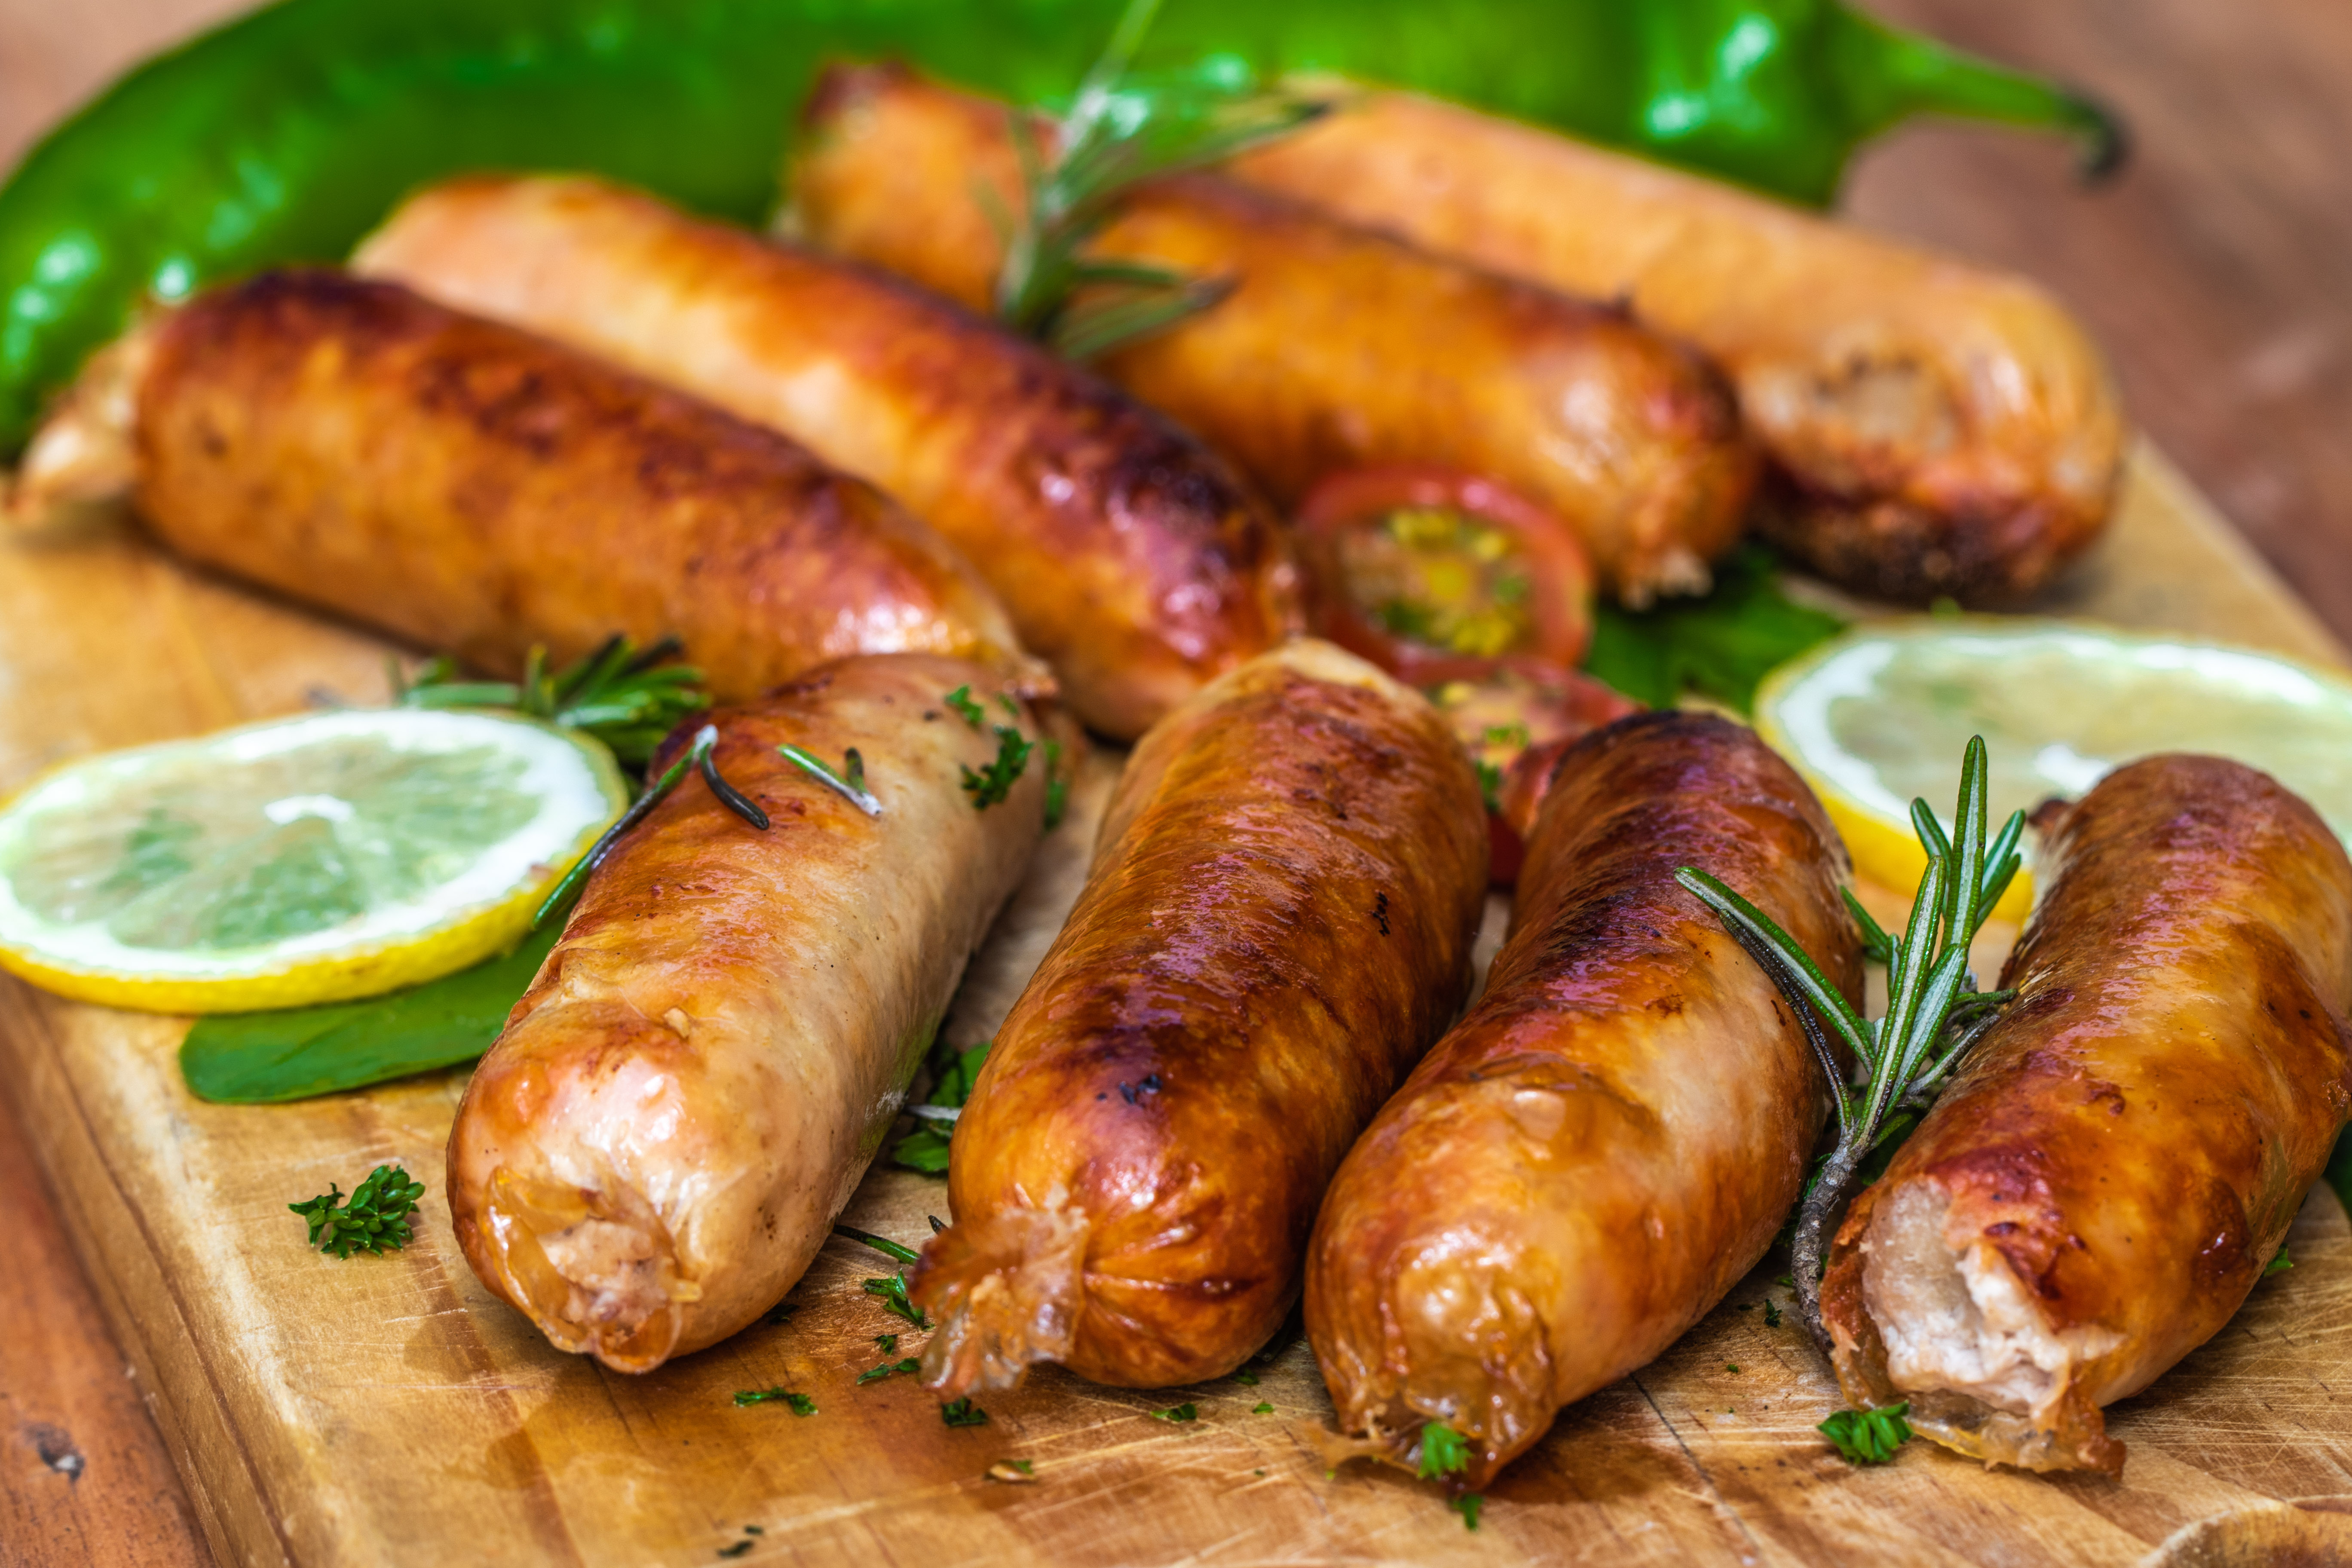 cooked-sausages-in-close-up-view-2901854